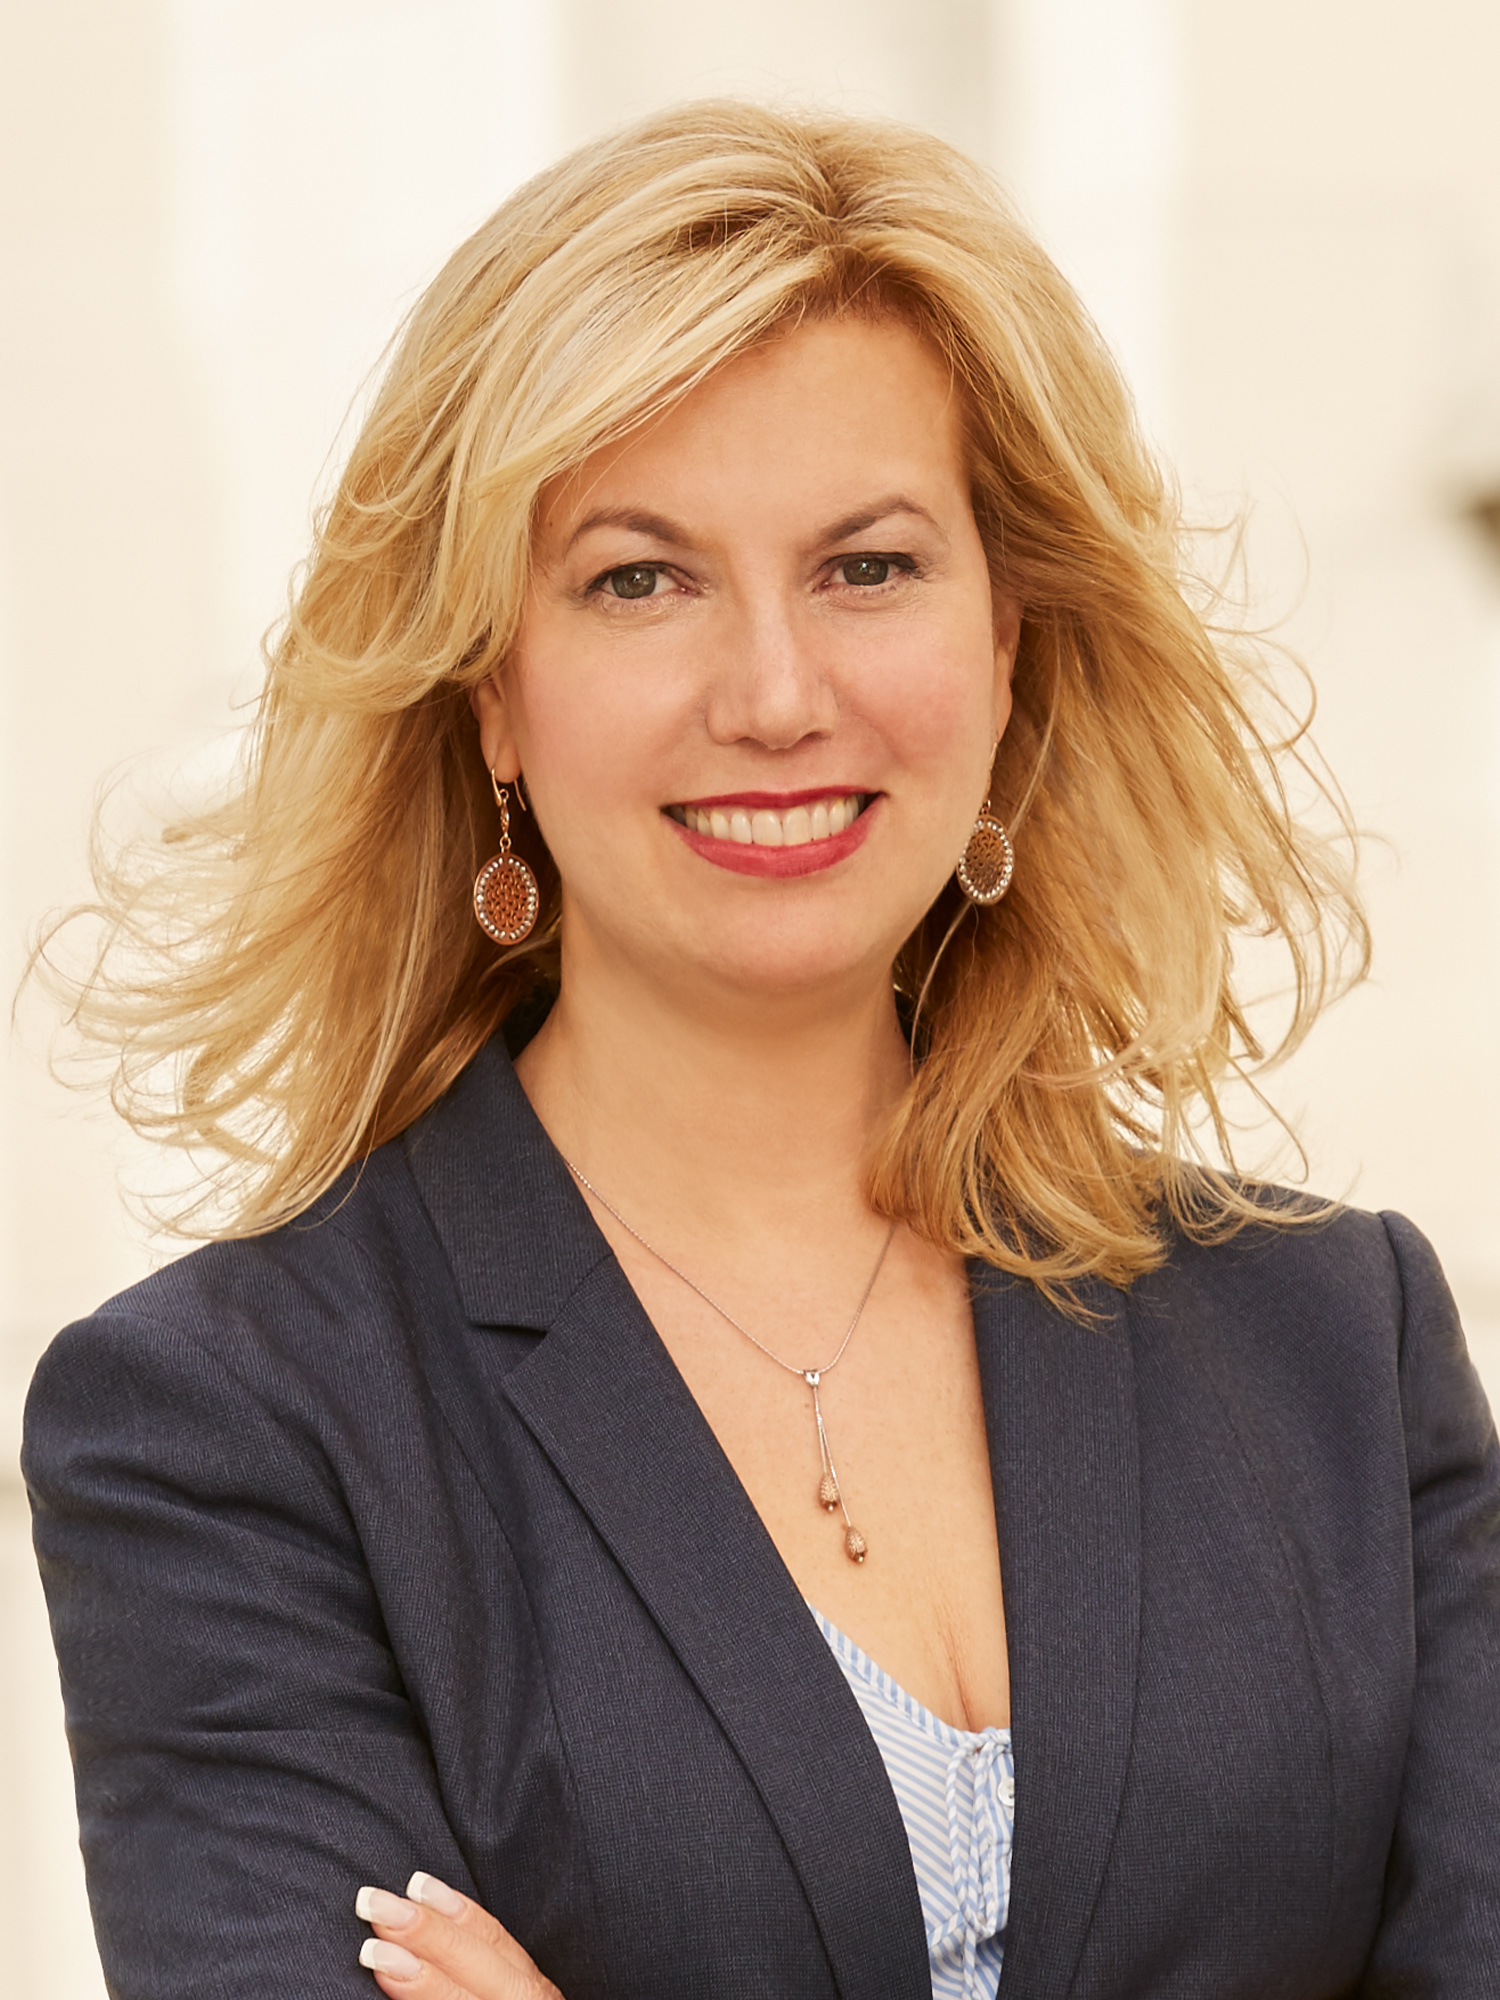 Sabrina Seidner, a top realtor in New York City for Corcoran, a real estate firm in West Side Gallery.